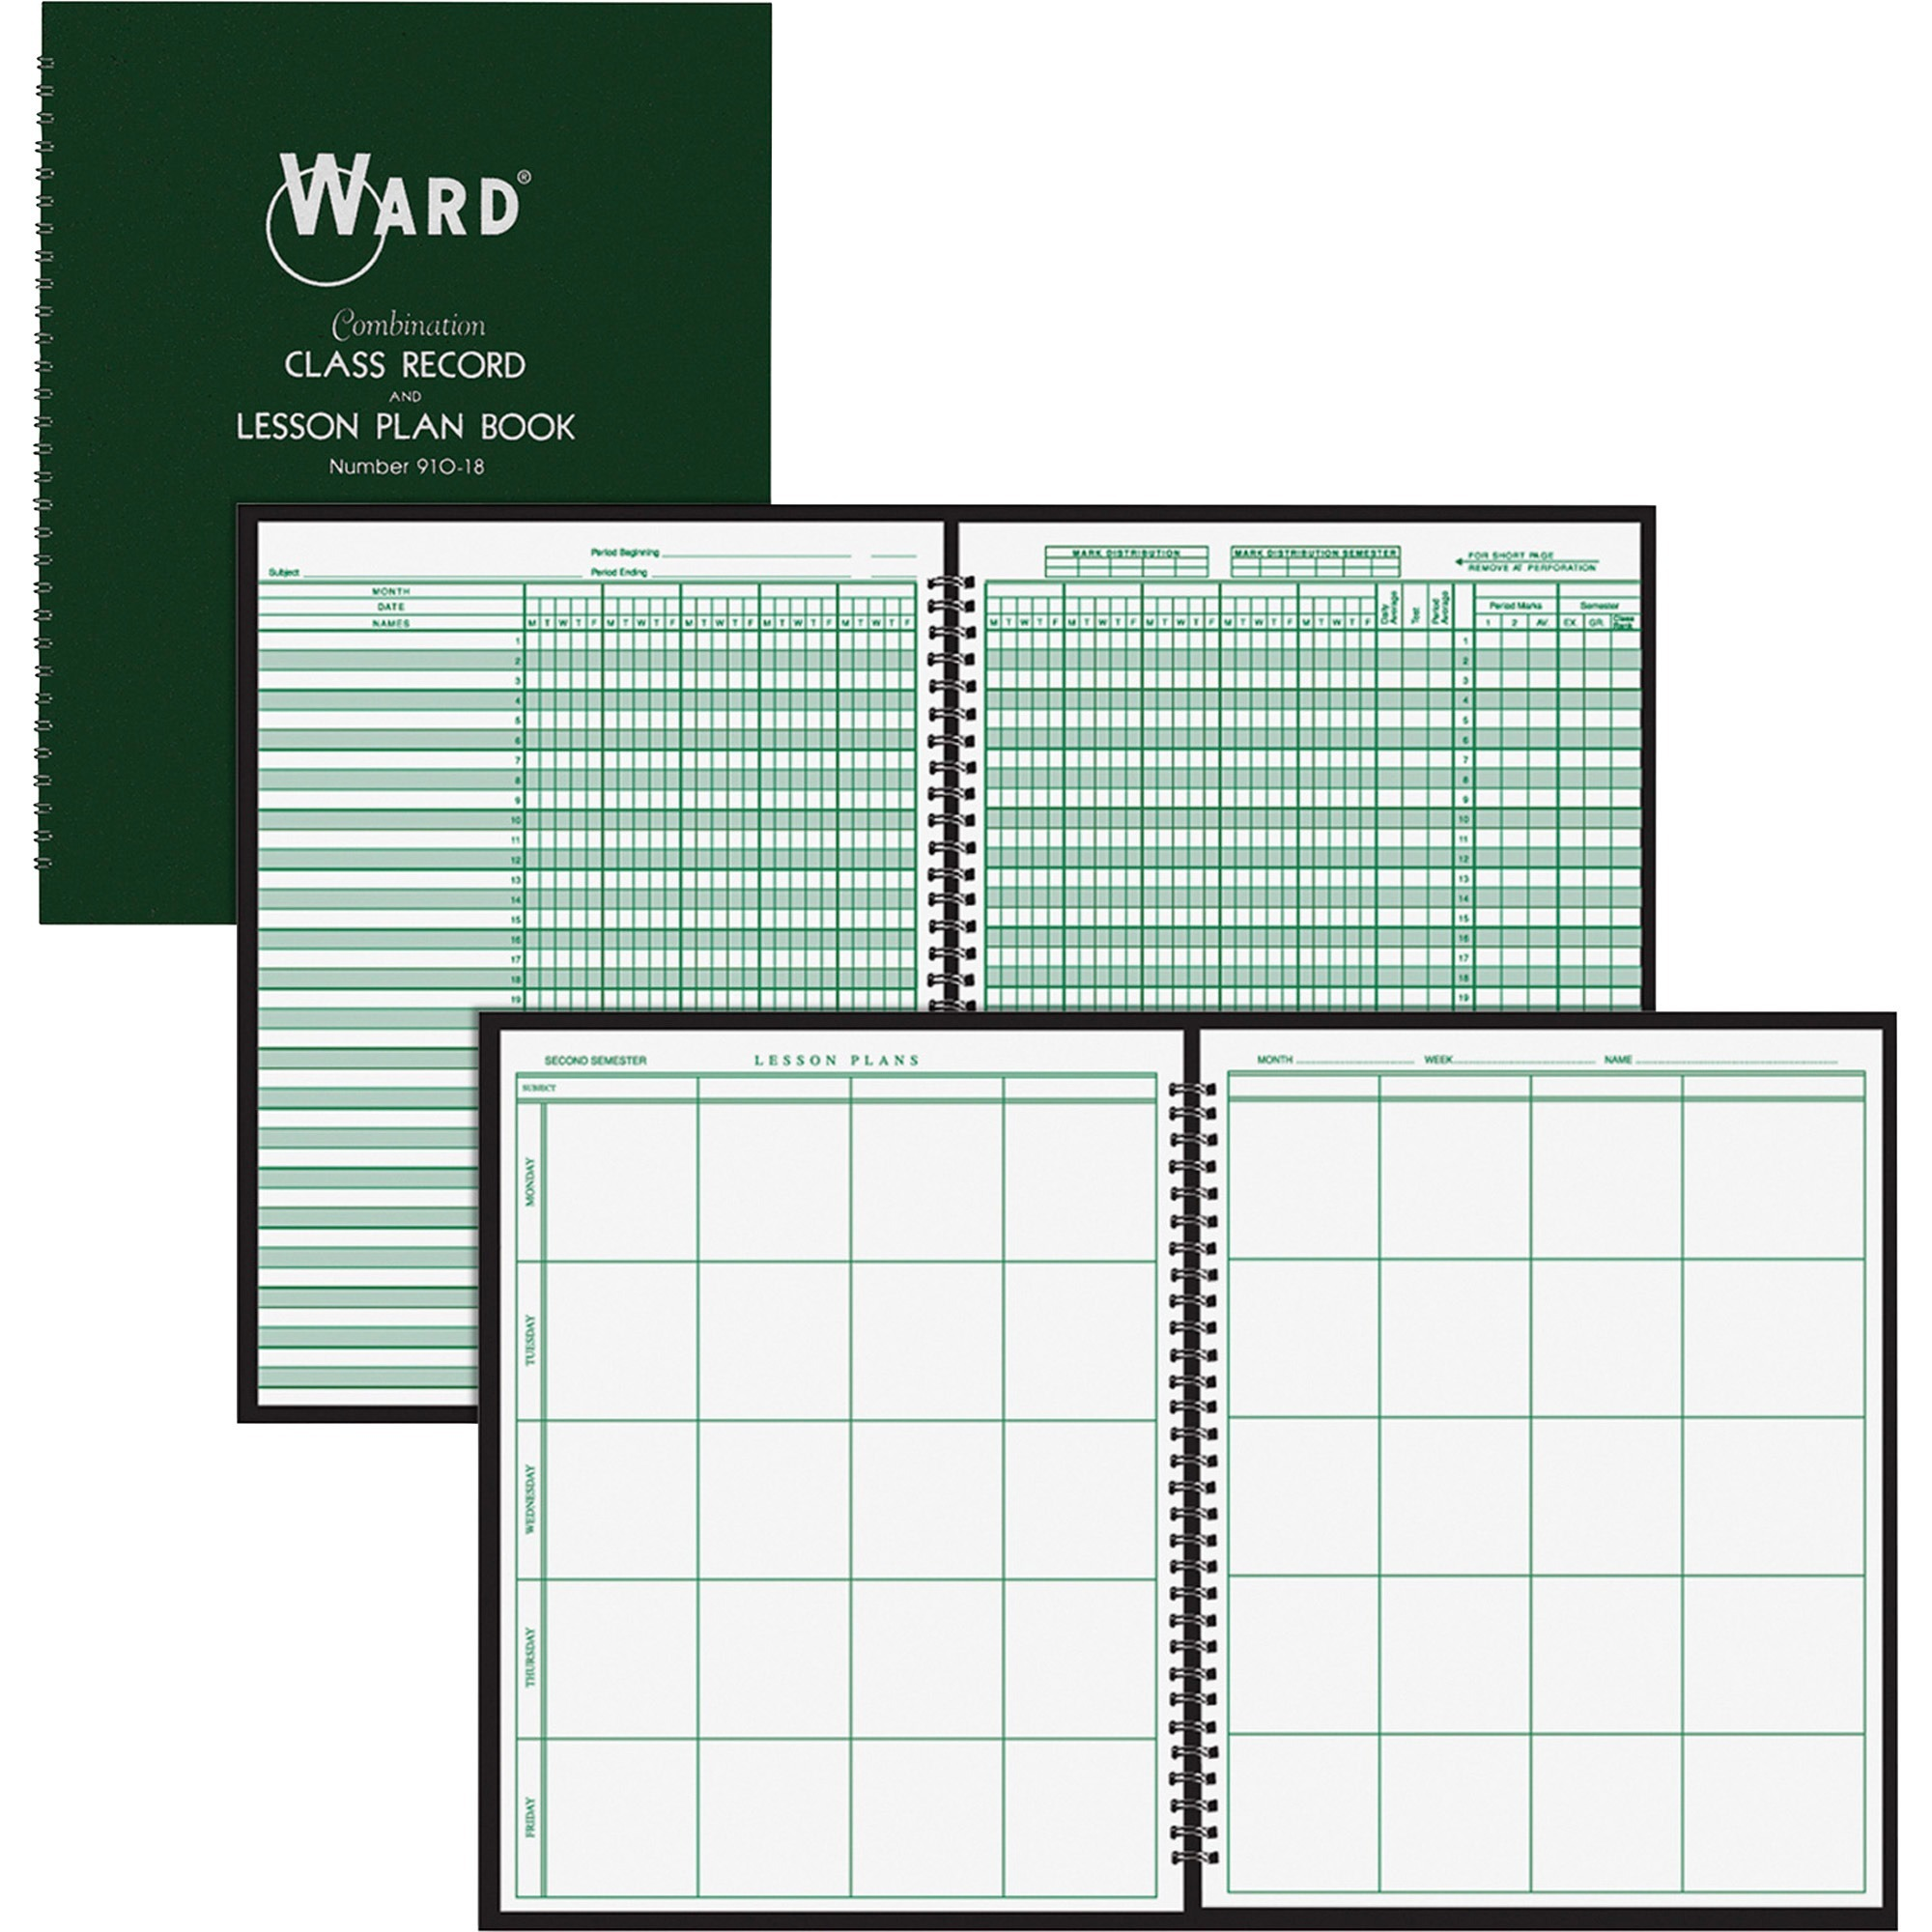 Ward, HUB91018, Combo Teacher's Record/Planning Book, 1 Each